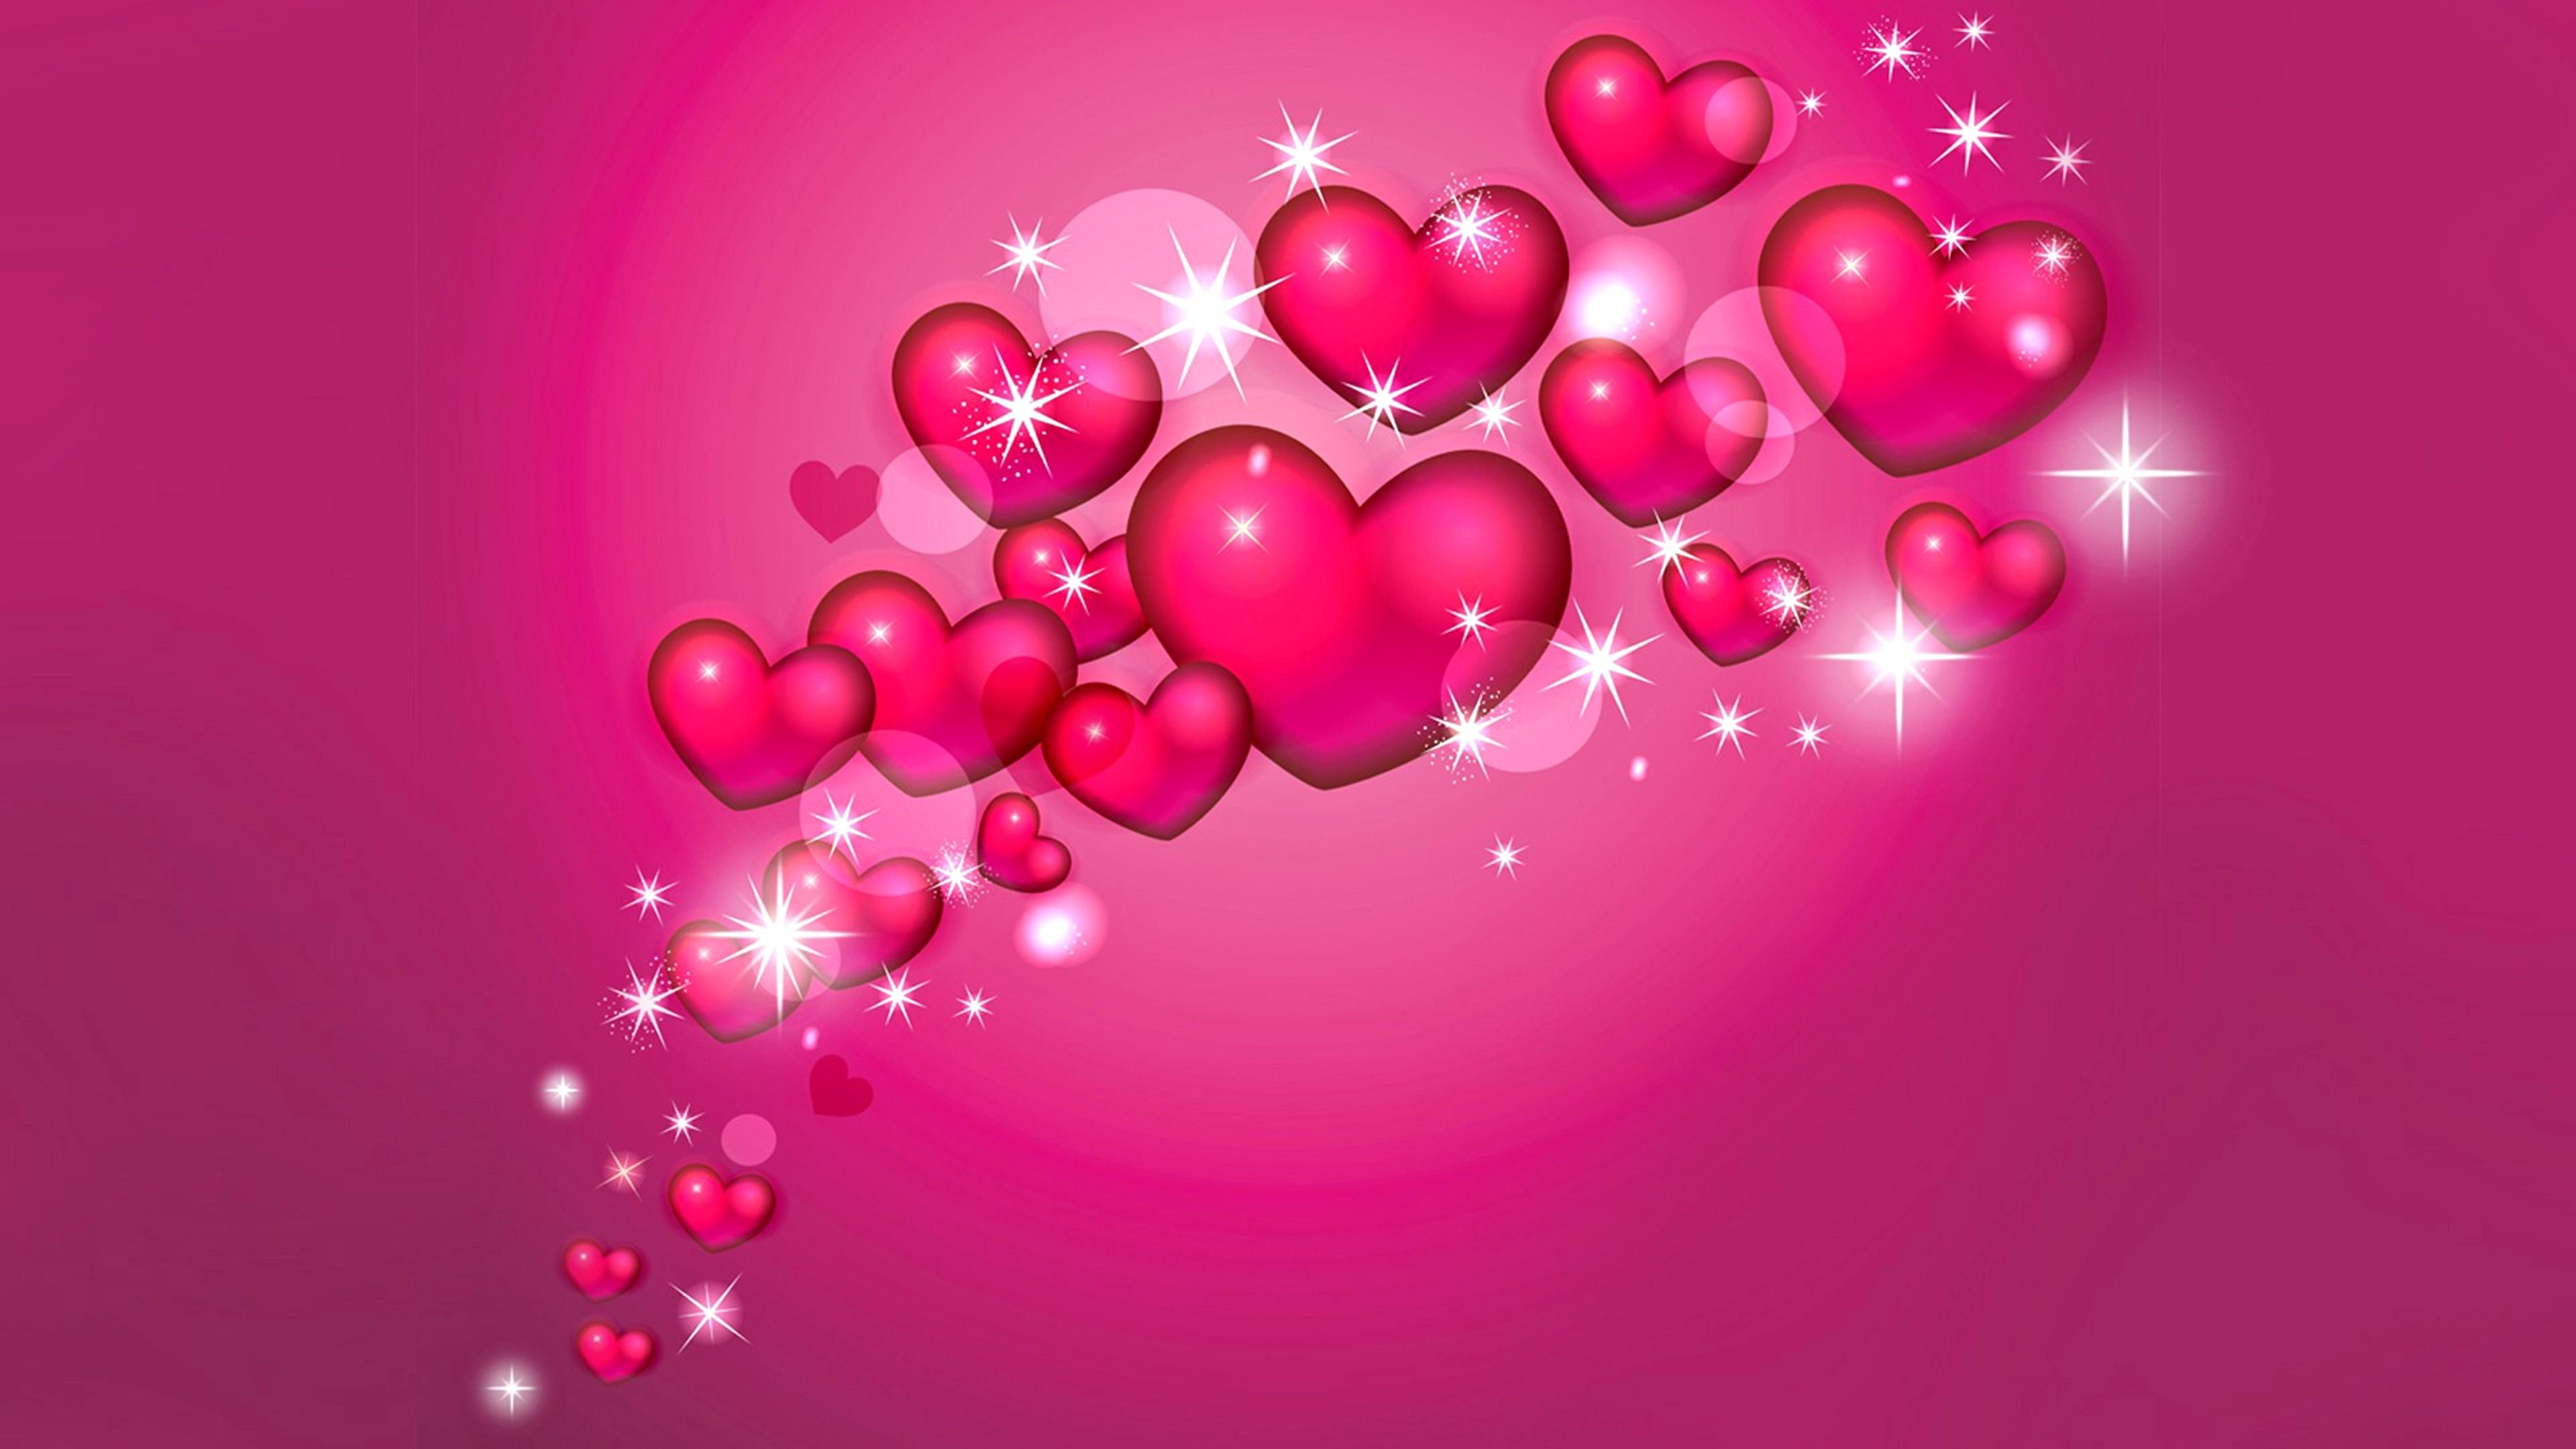 65 Hearts Background Wallpapers on WallpaperPlay 3840x2160